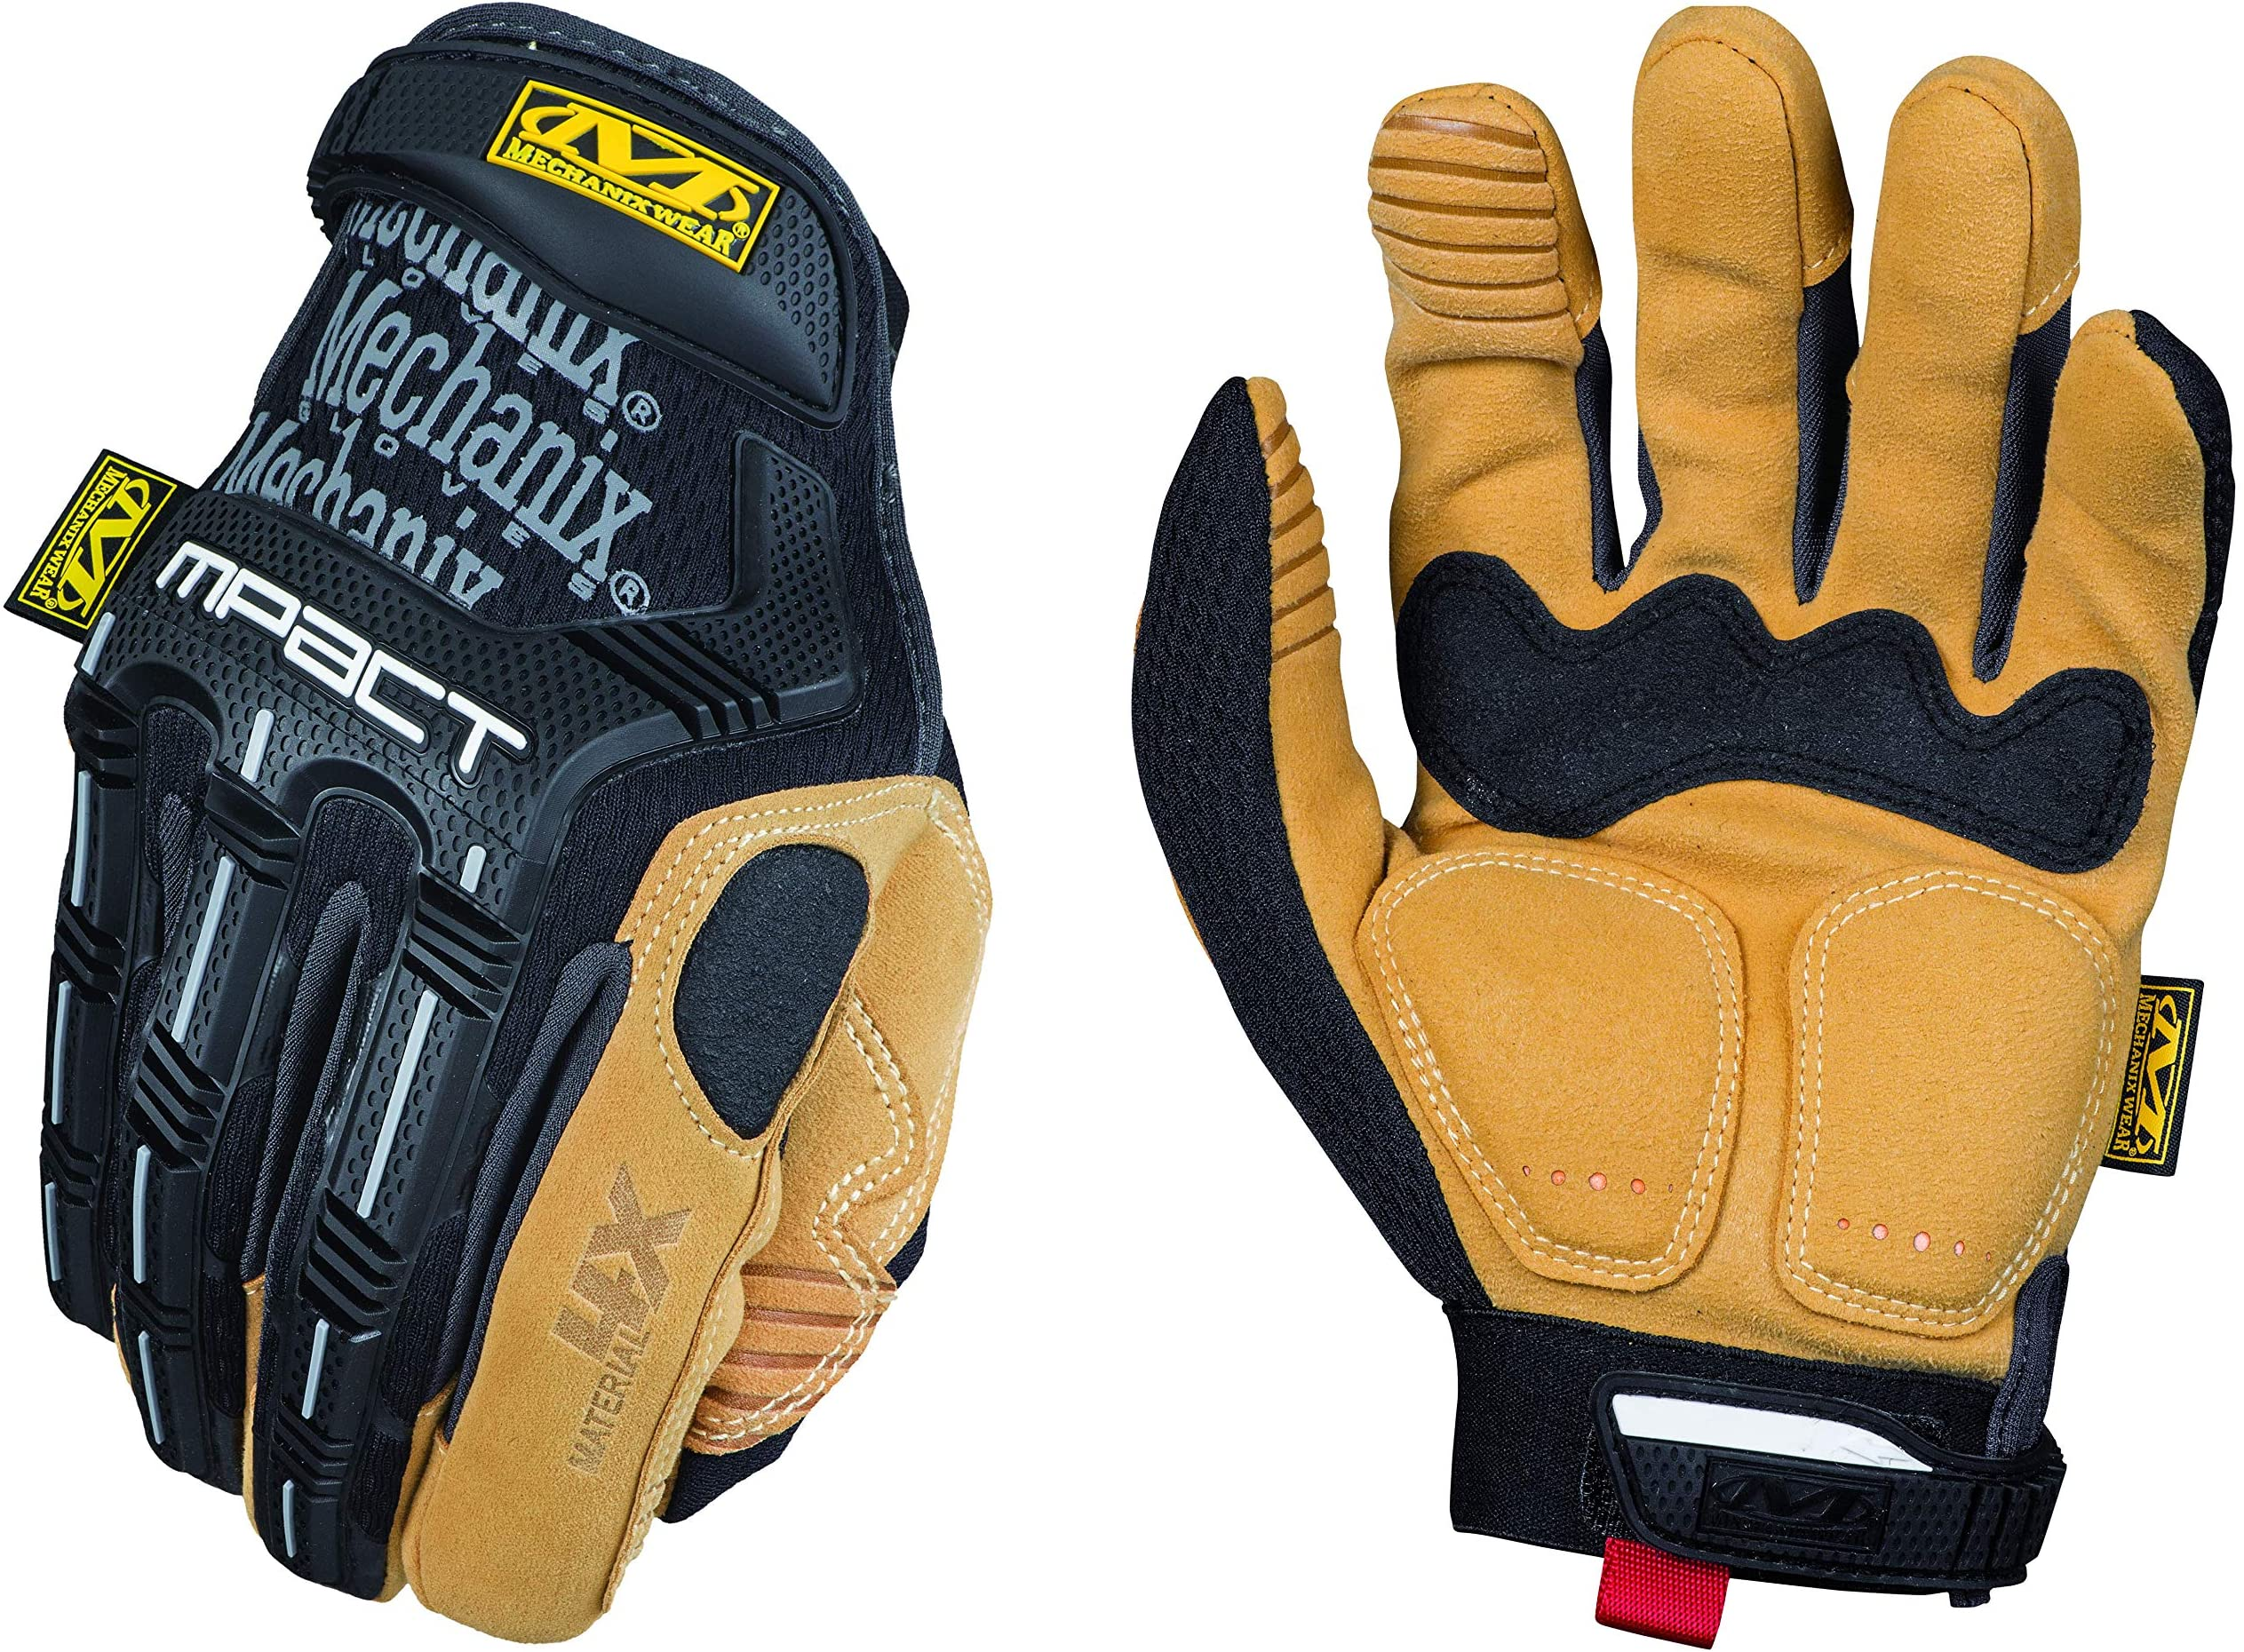 Mechanix Wear MP4X-75-009 : Material4X M-Pact Work Gloves (Medium, Brown/Black)